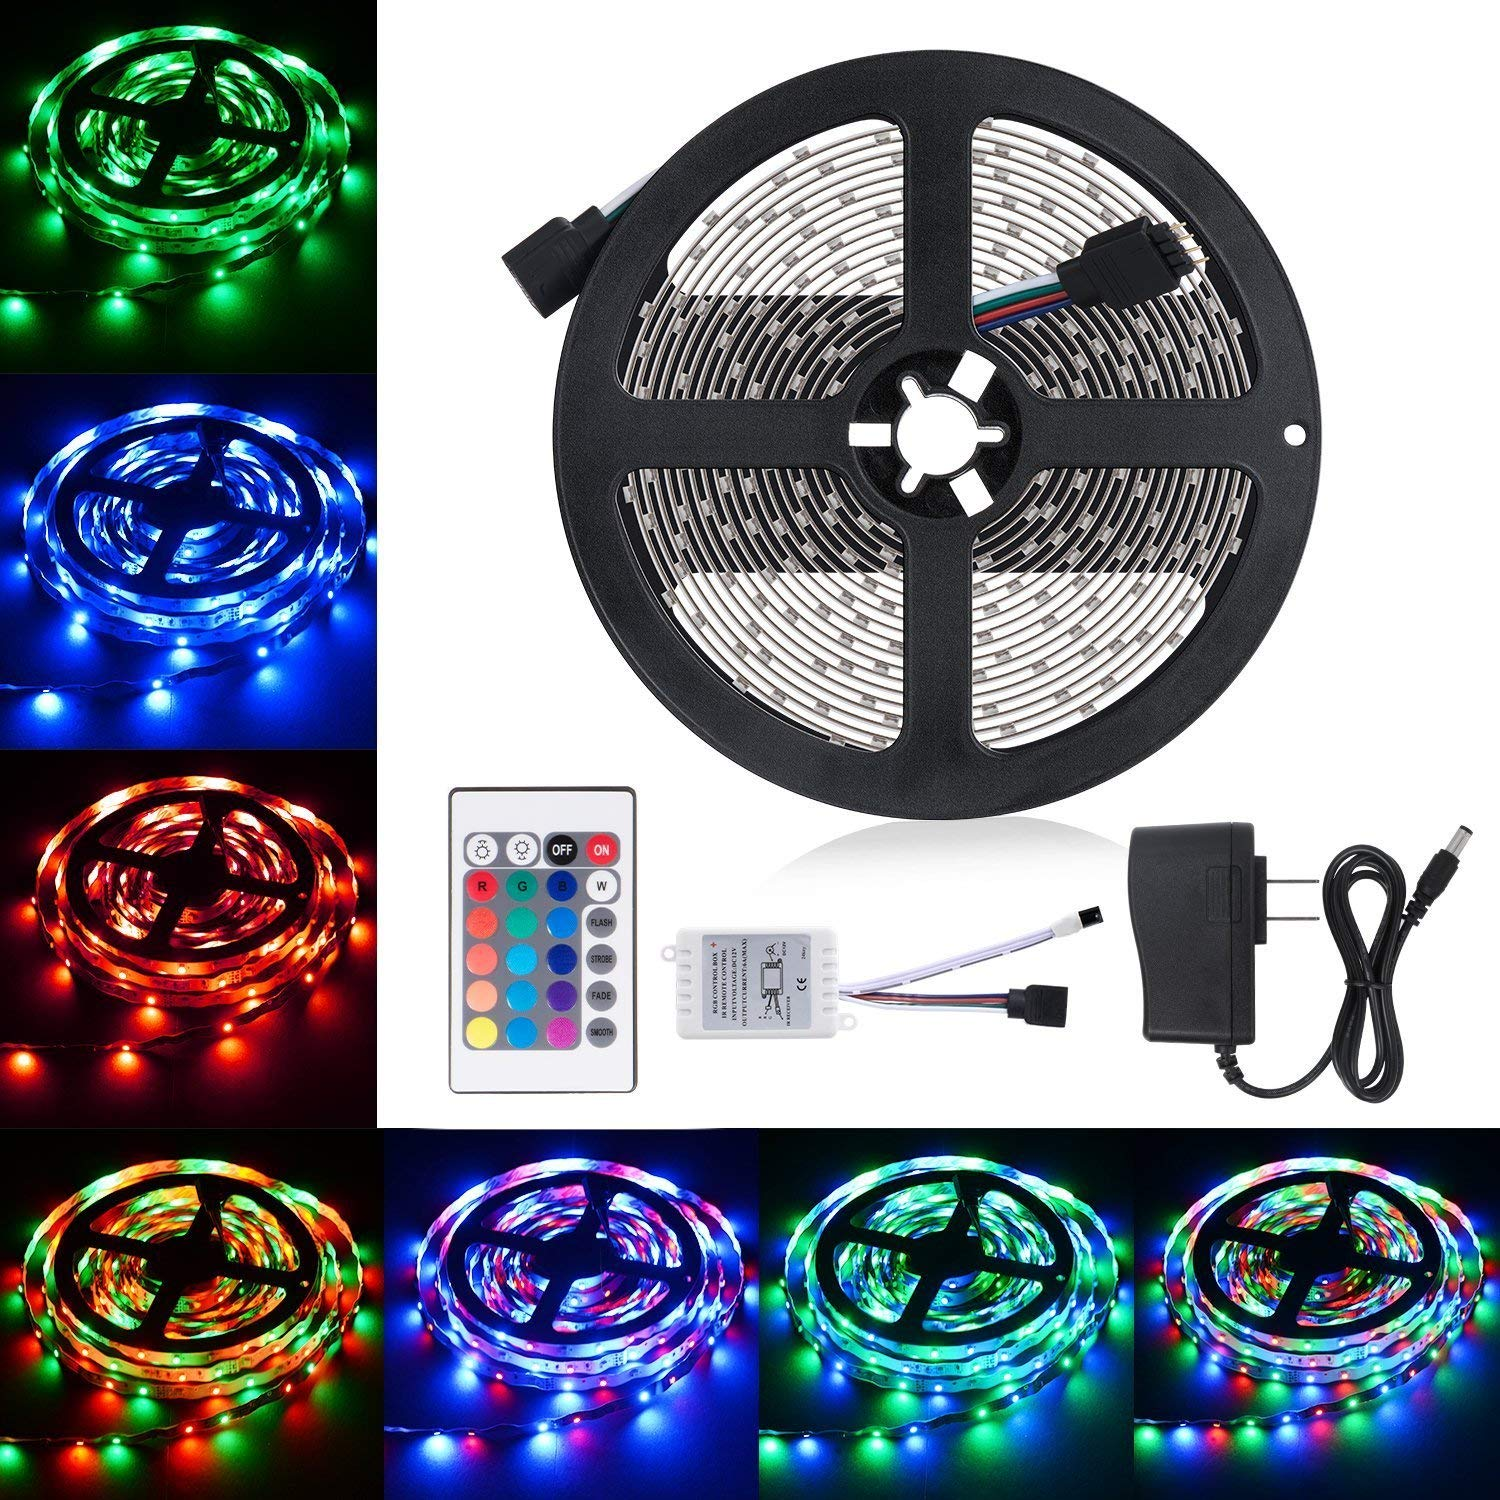 Boomile 16.4Ft LED Light Strip SMD 3528 RGB 300 LEDs strip lights,12V DC Light Strips, LED Color Changing Kit with Flexible Strip Light+24 Key IR Remote Control+Power Supply For Home Kitchen Car Bar